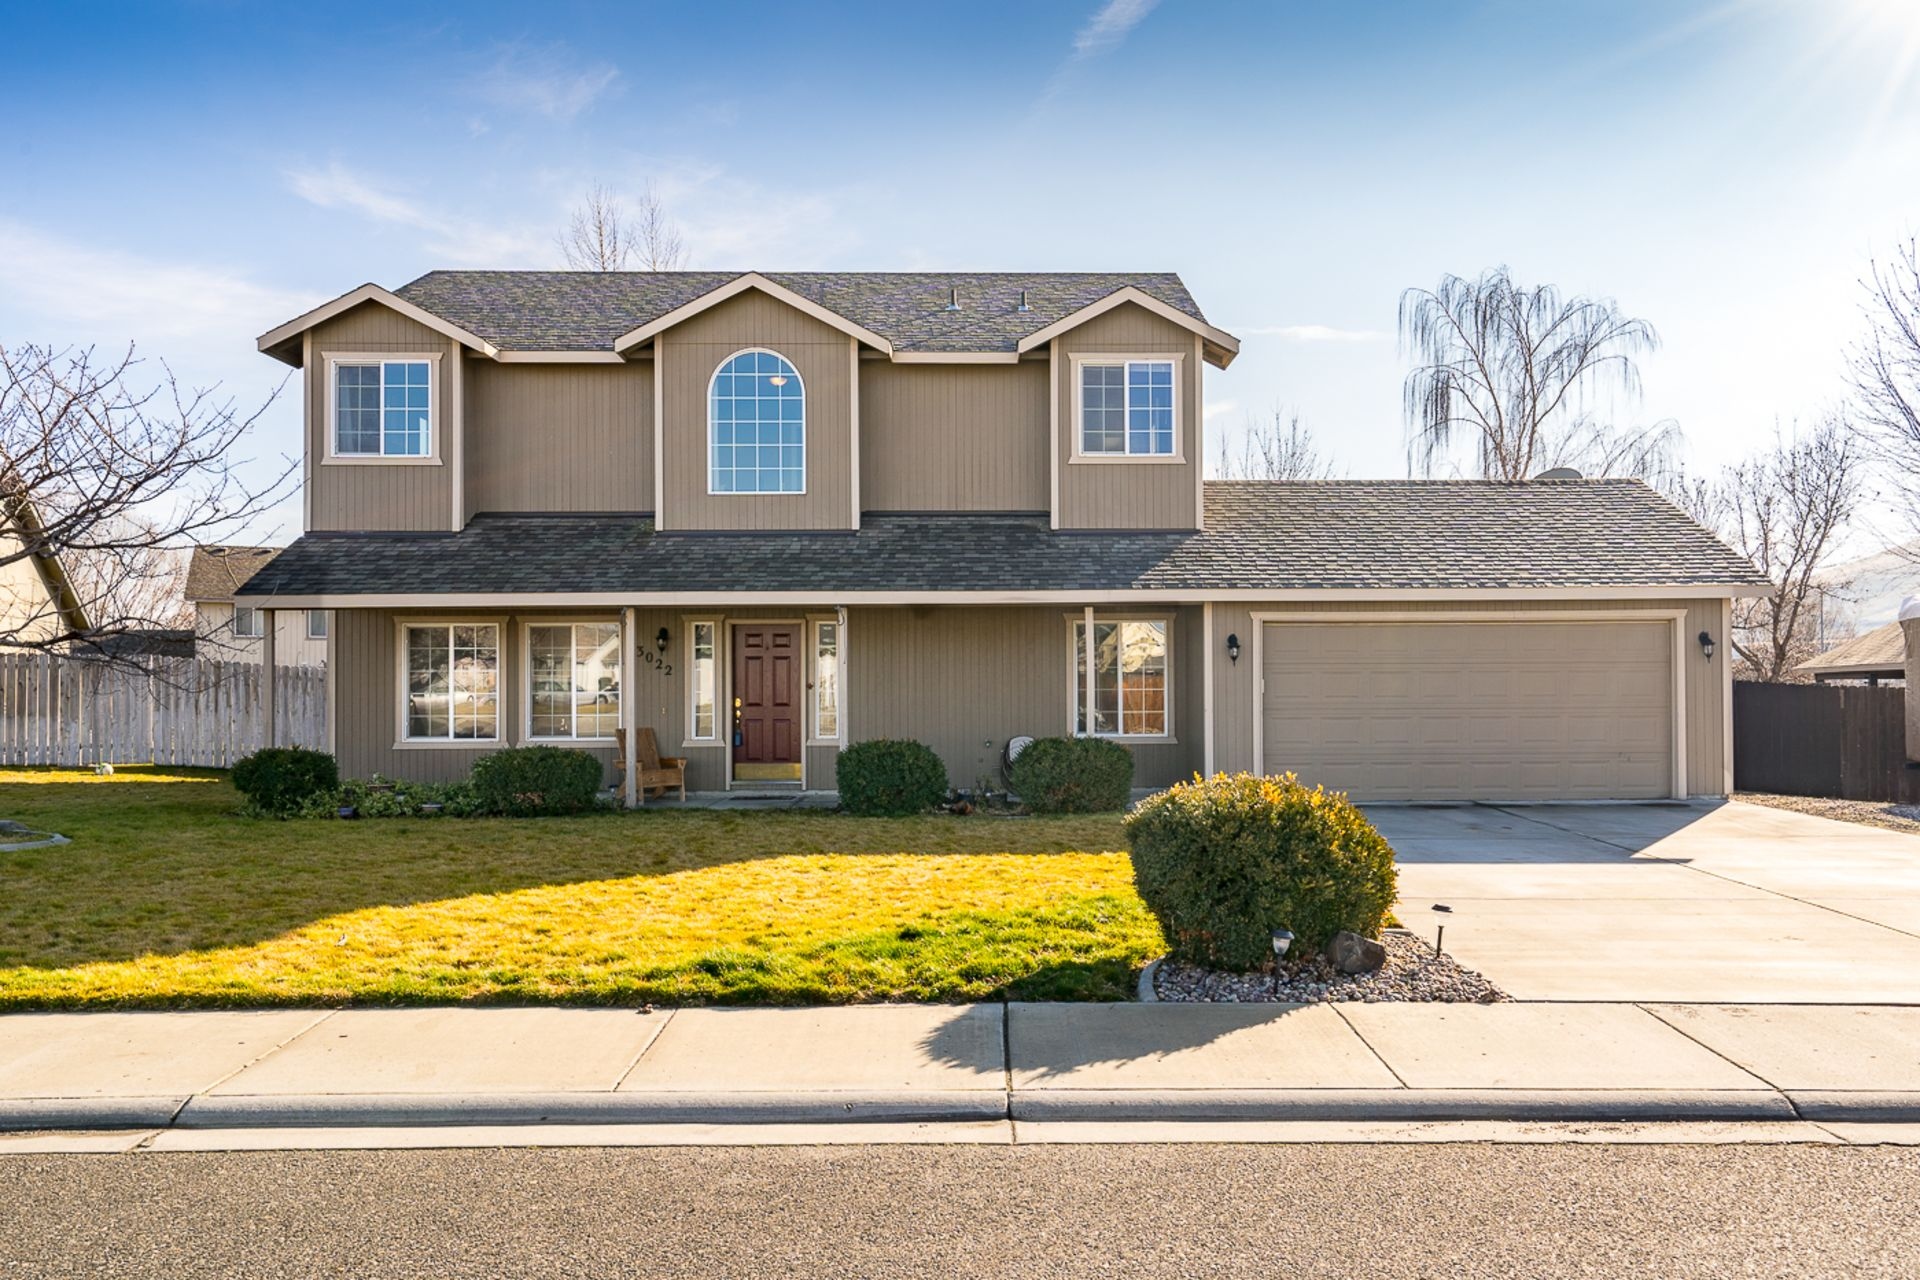 New listing: 3022 Bluet Drive, West Richland